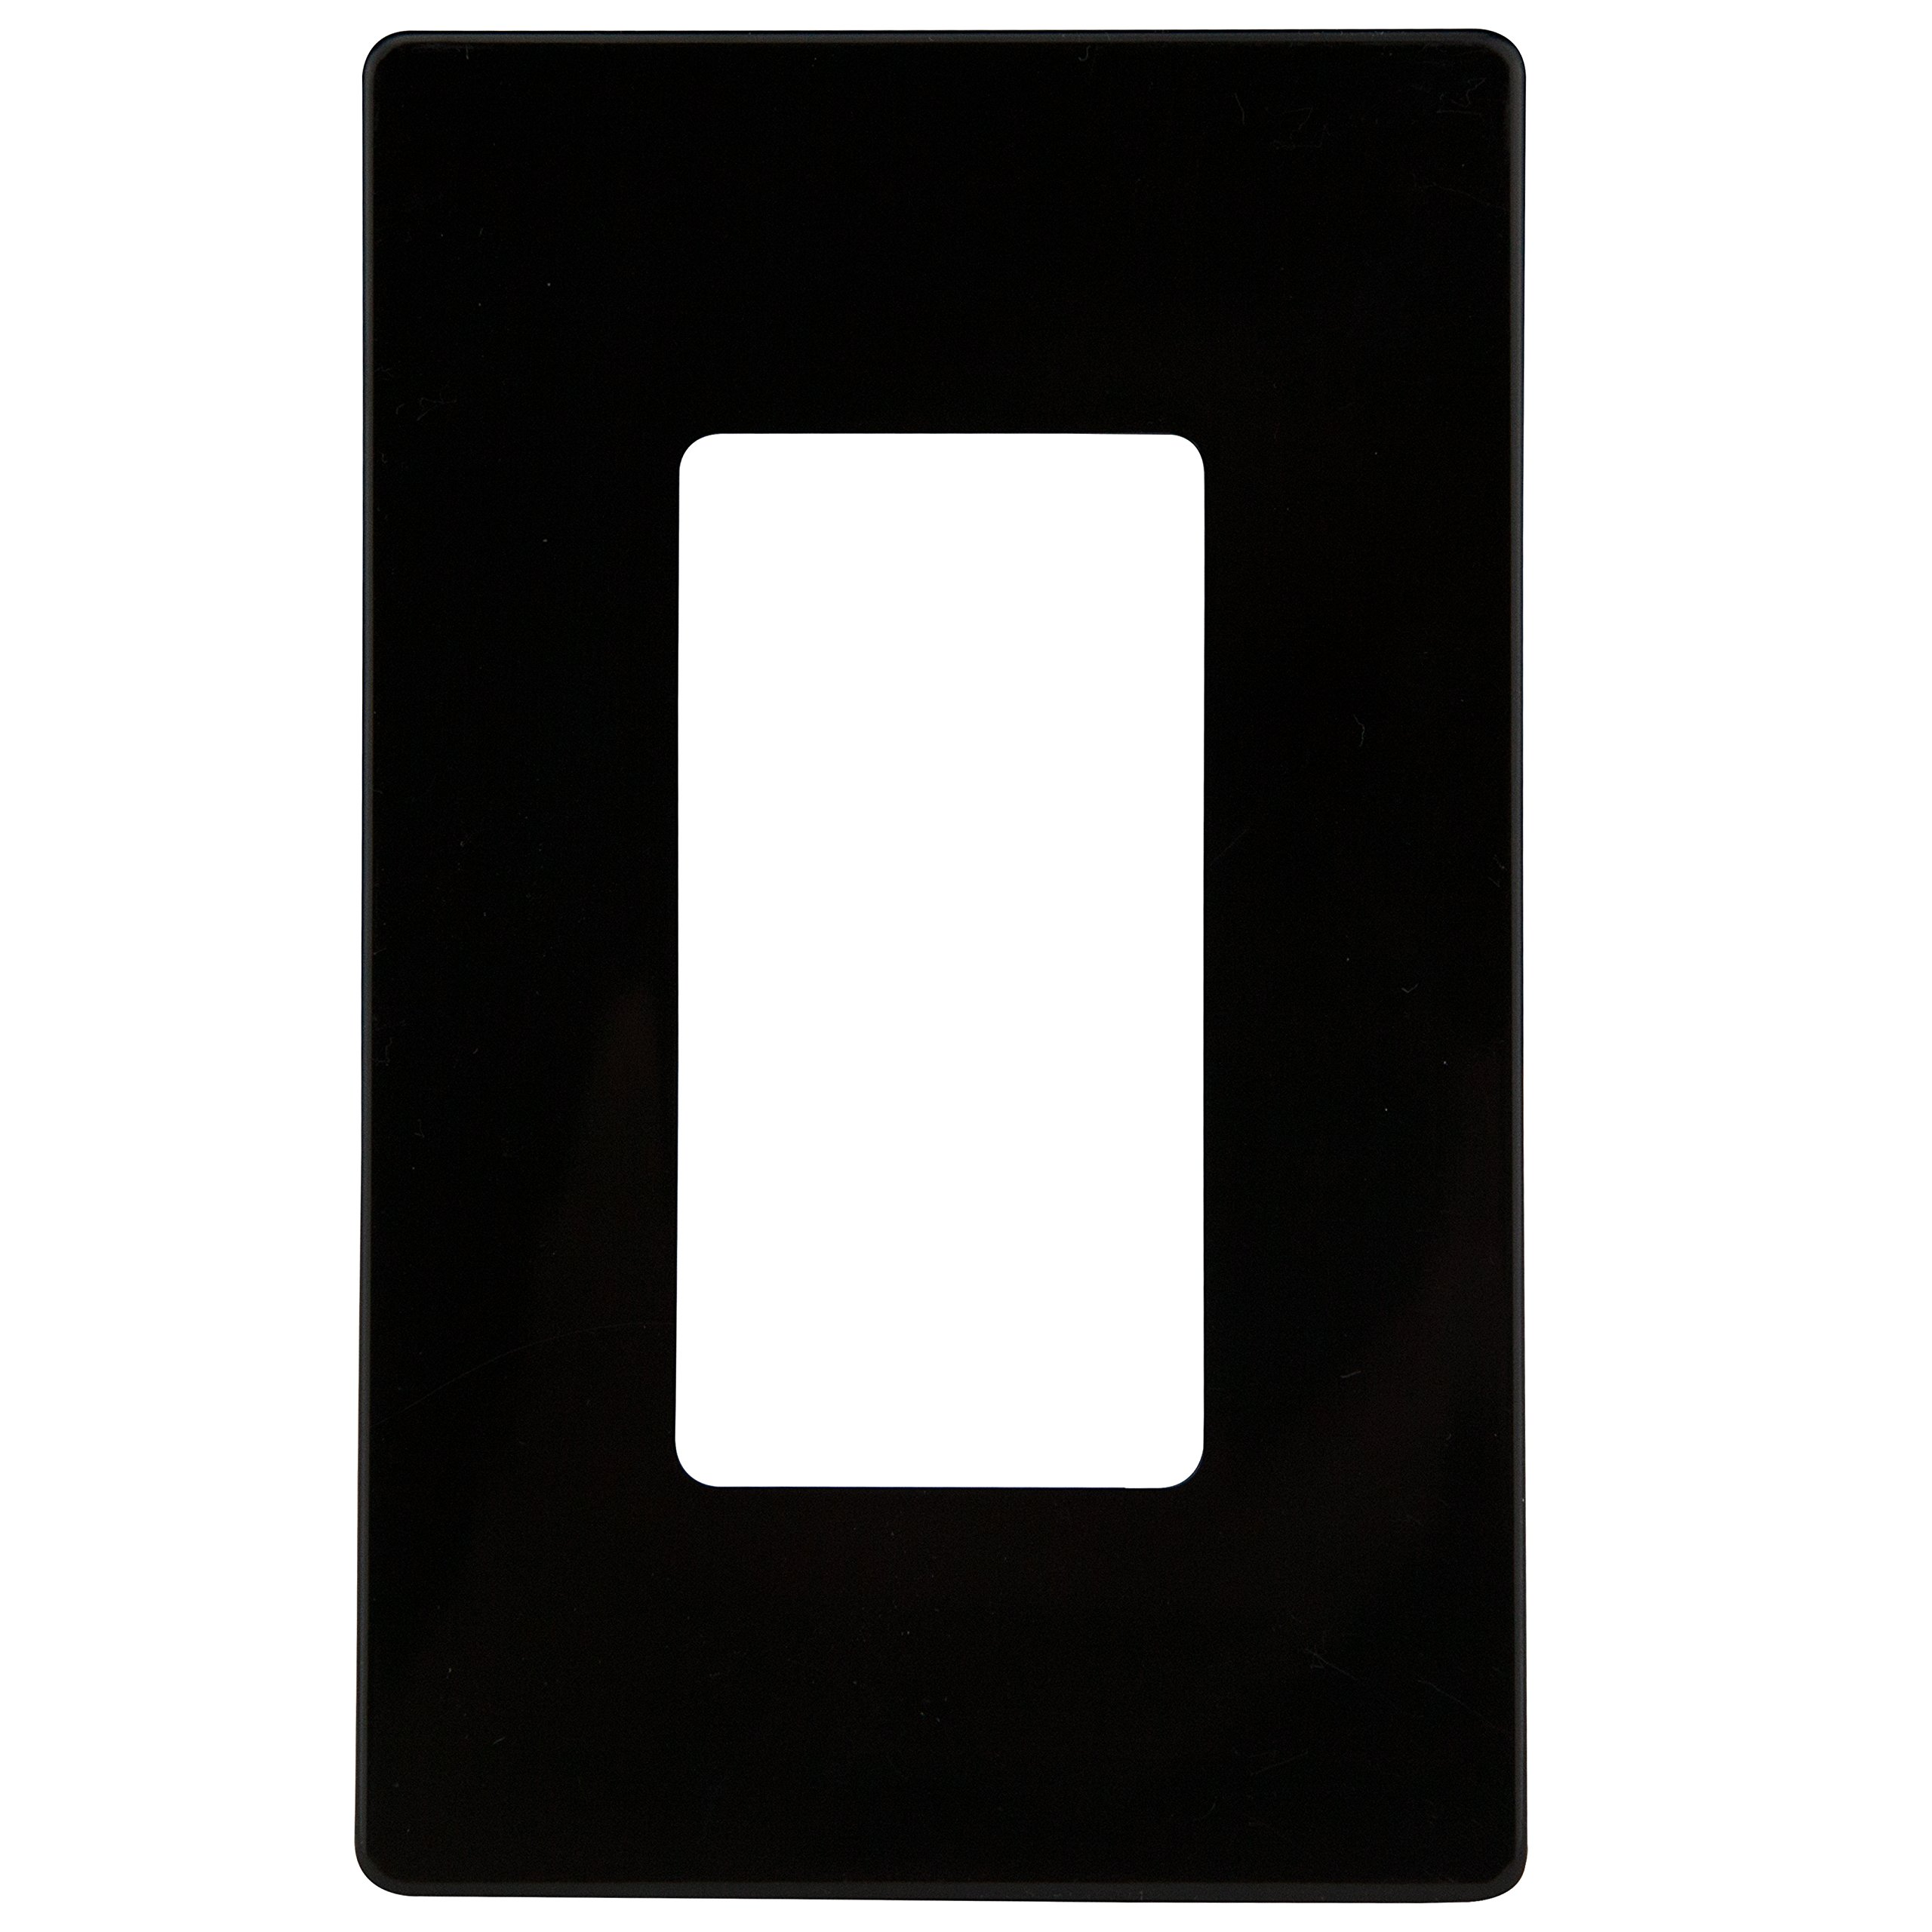 Enerlites SI8831-BK Screwless Cover Child Safe Decorator Wall Plate, Standard Size 1-Gang, Unbreakable Polycarbonate Thermoplastic, Black